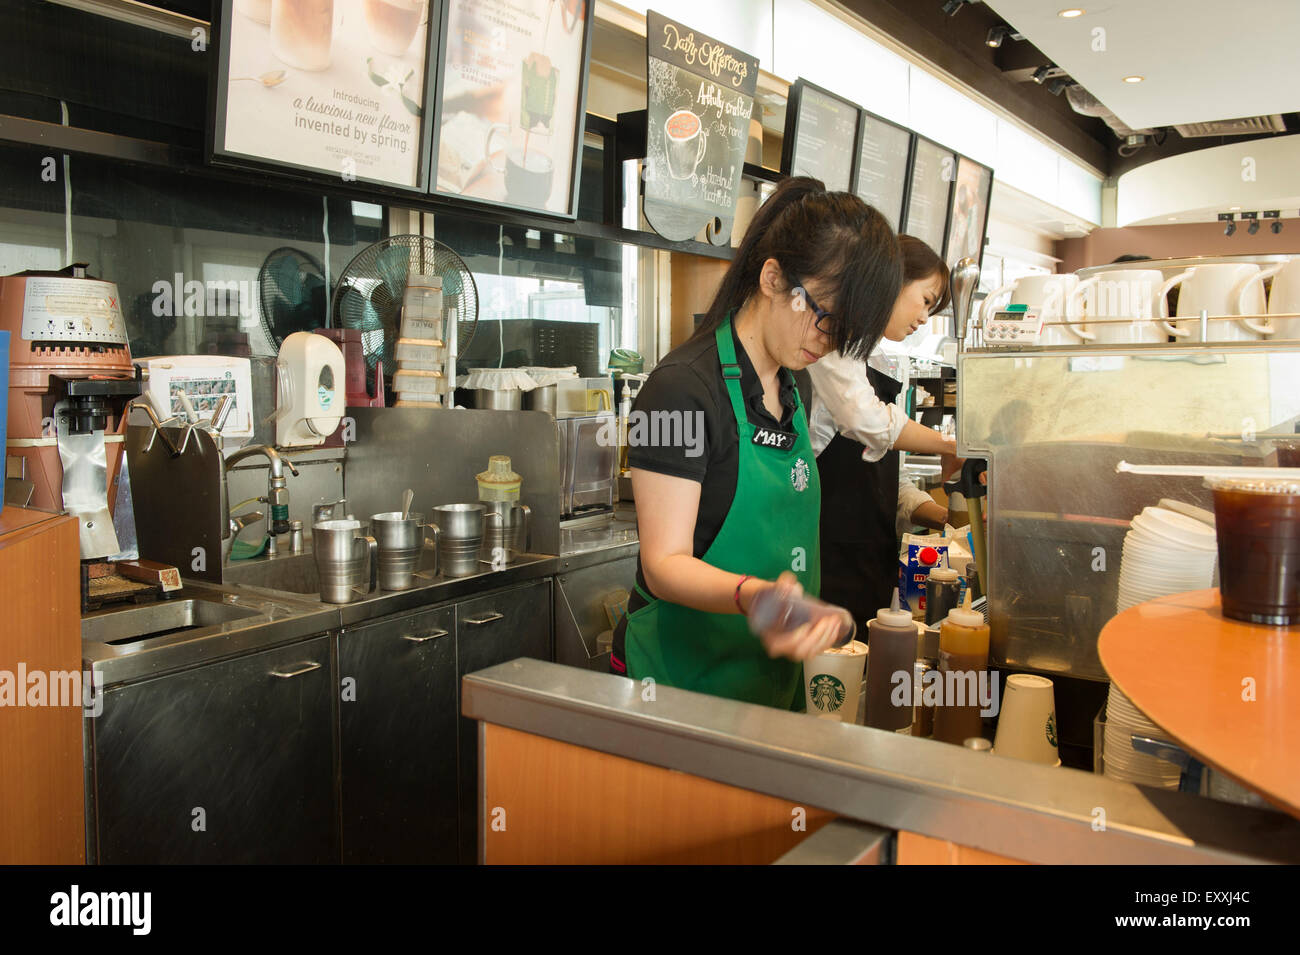 Starbucks Coffee Barista Stock Photos Amp Starbucks Coffee